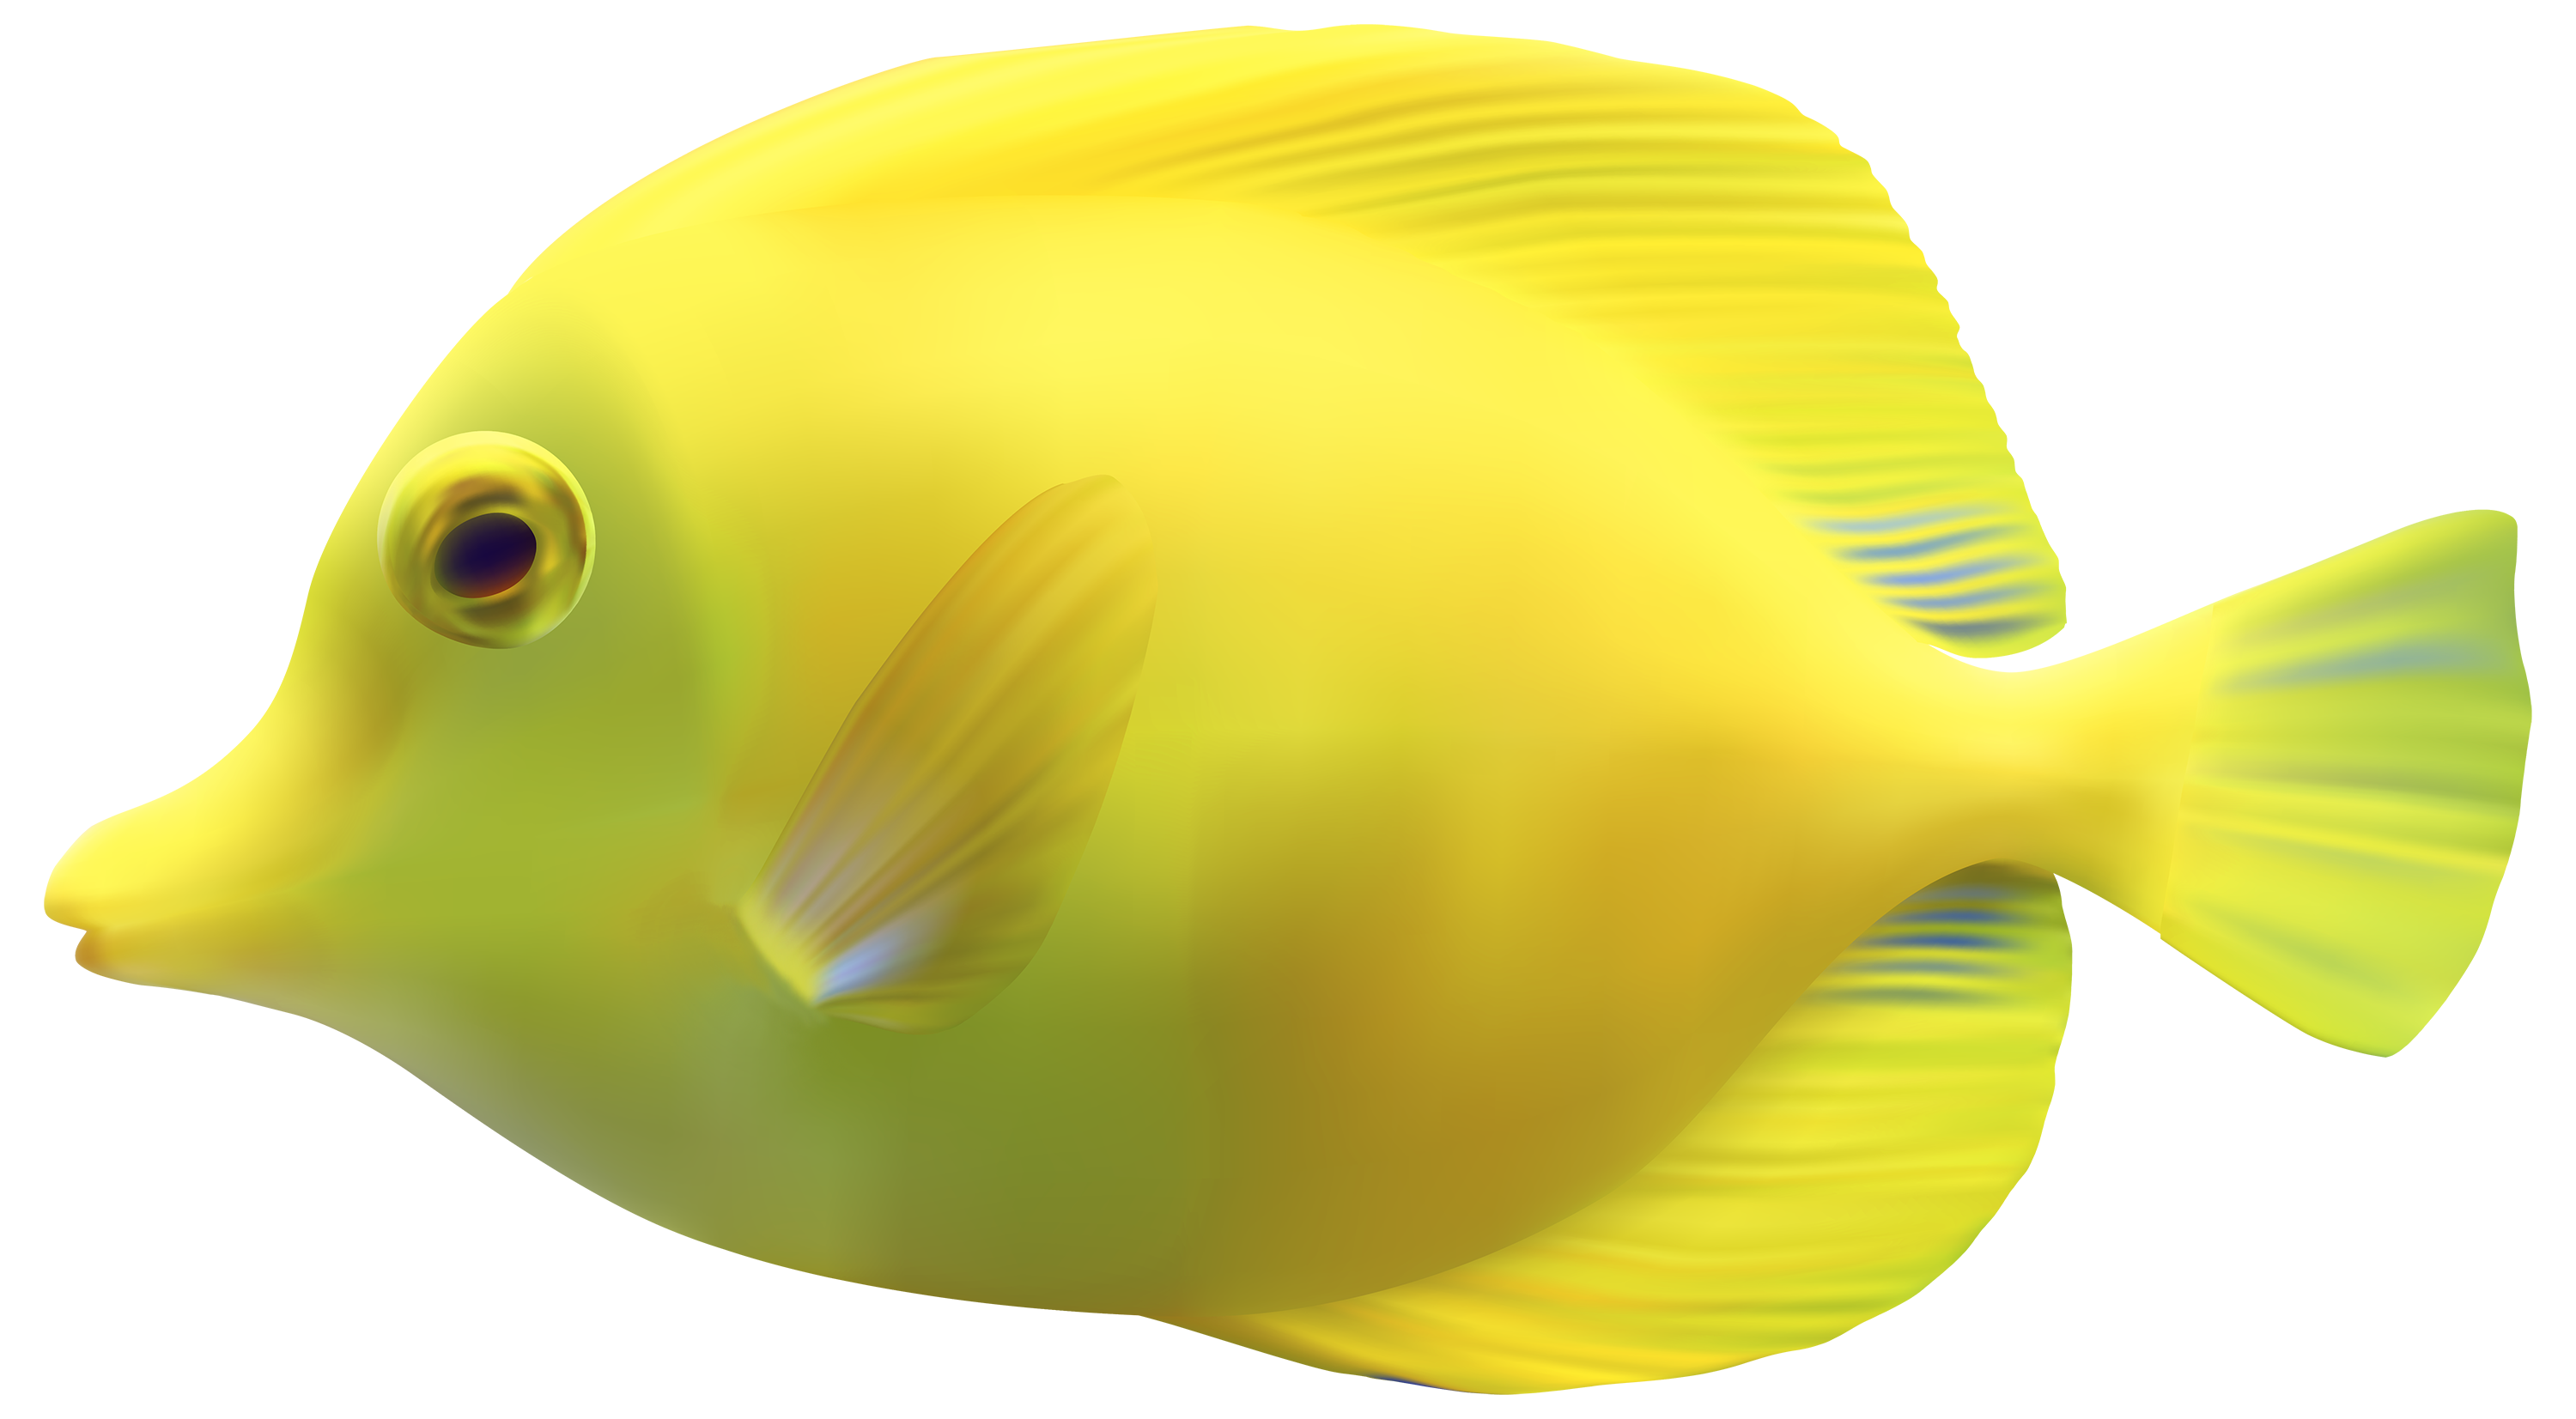 Fish High Quality Background on Wallpapers Vista